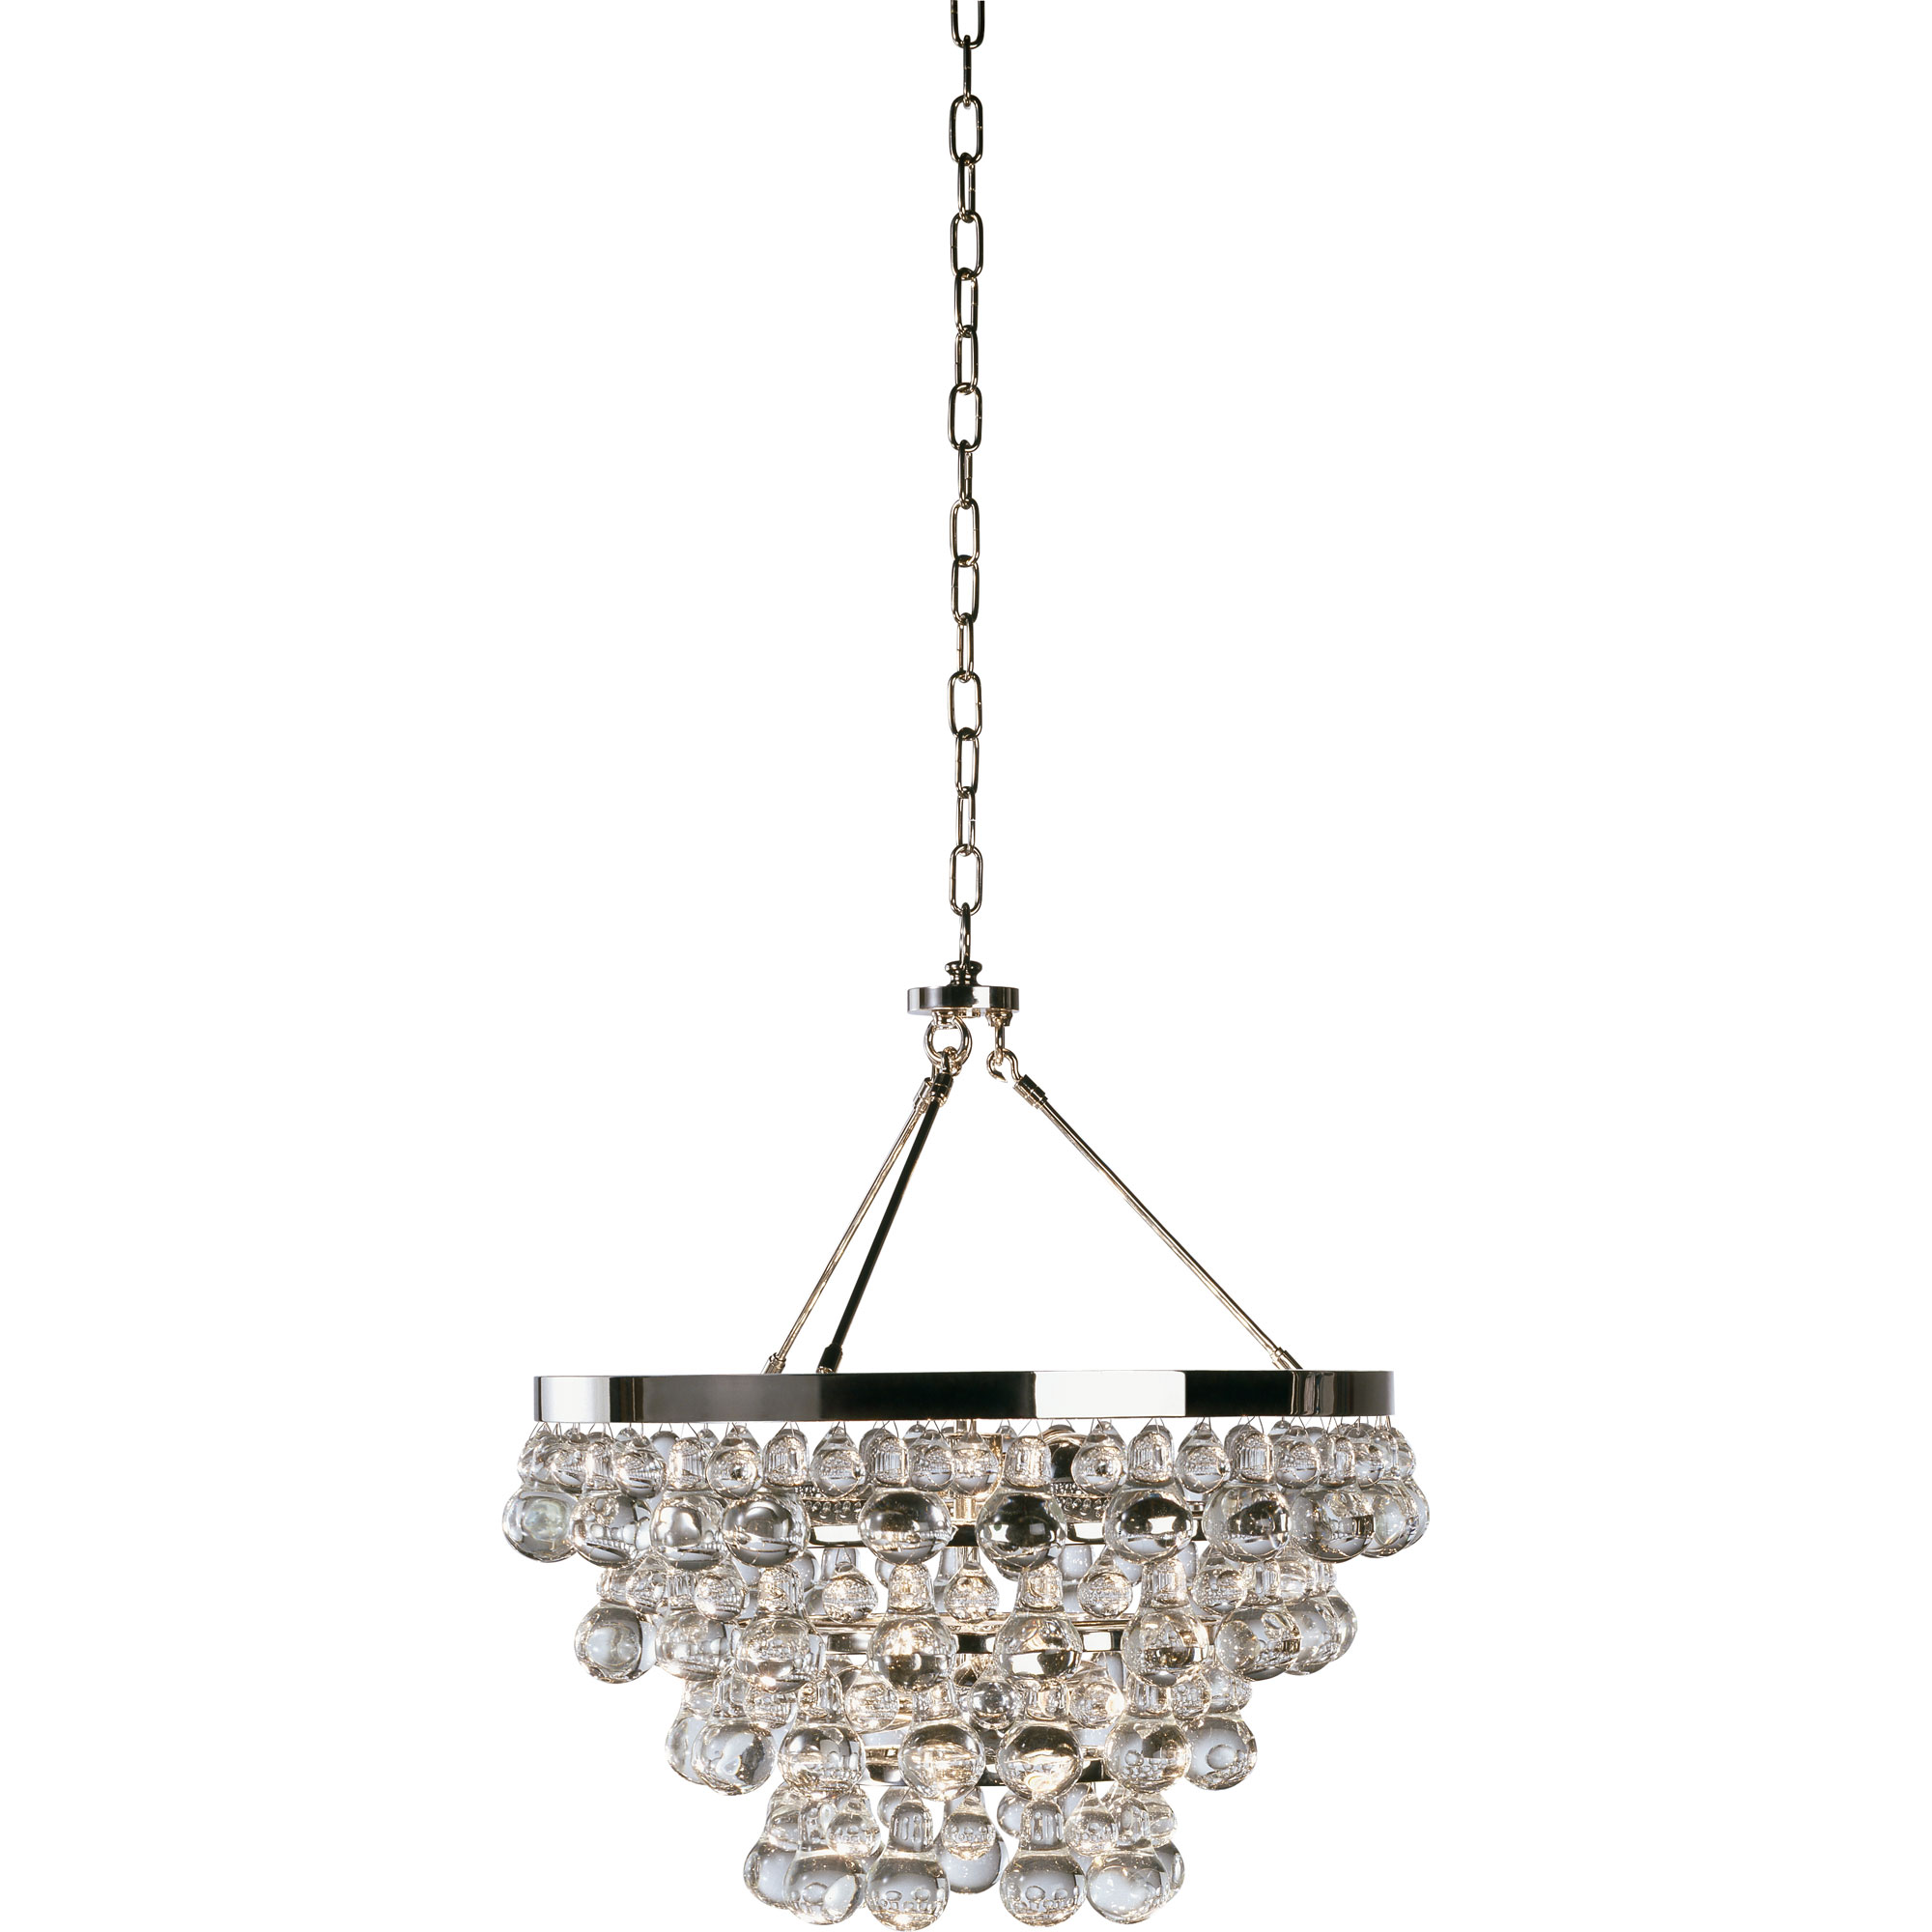 Bling Convertible Chandelier